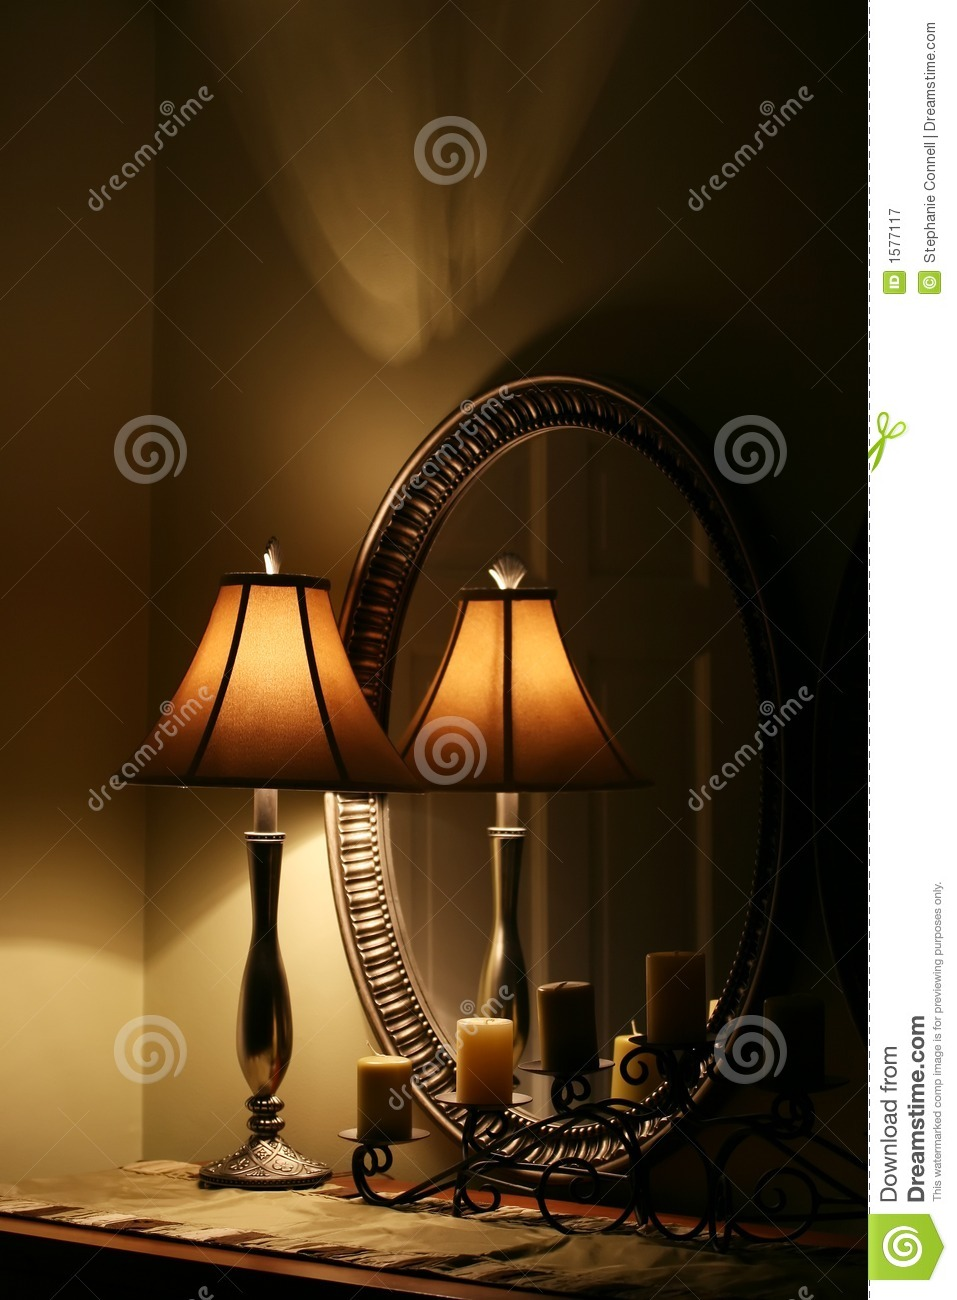 Elegant Lamp and Mirror on Table